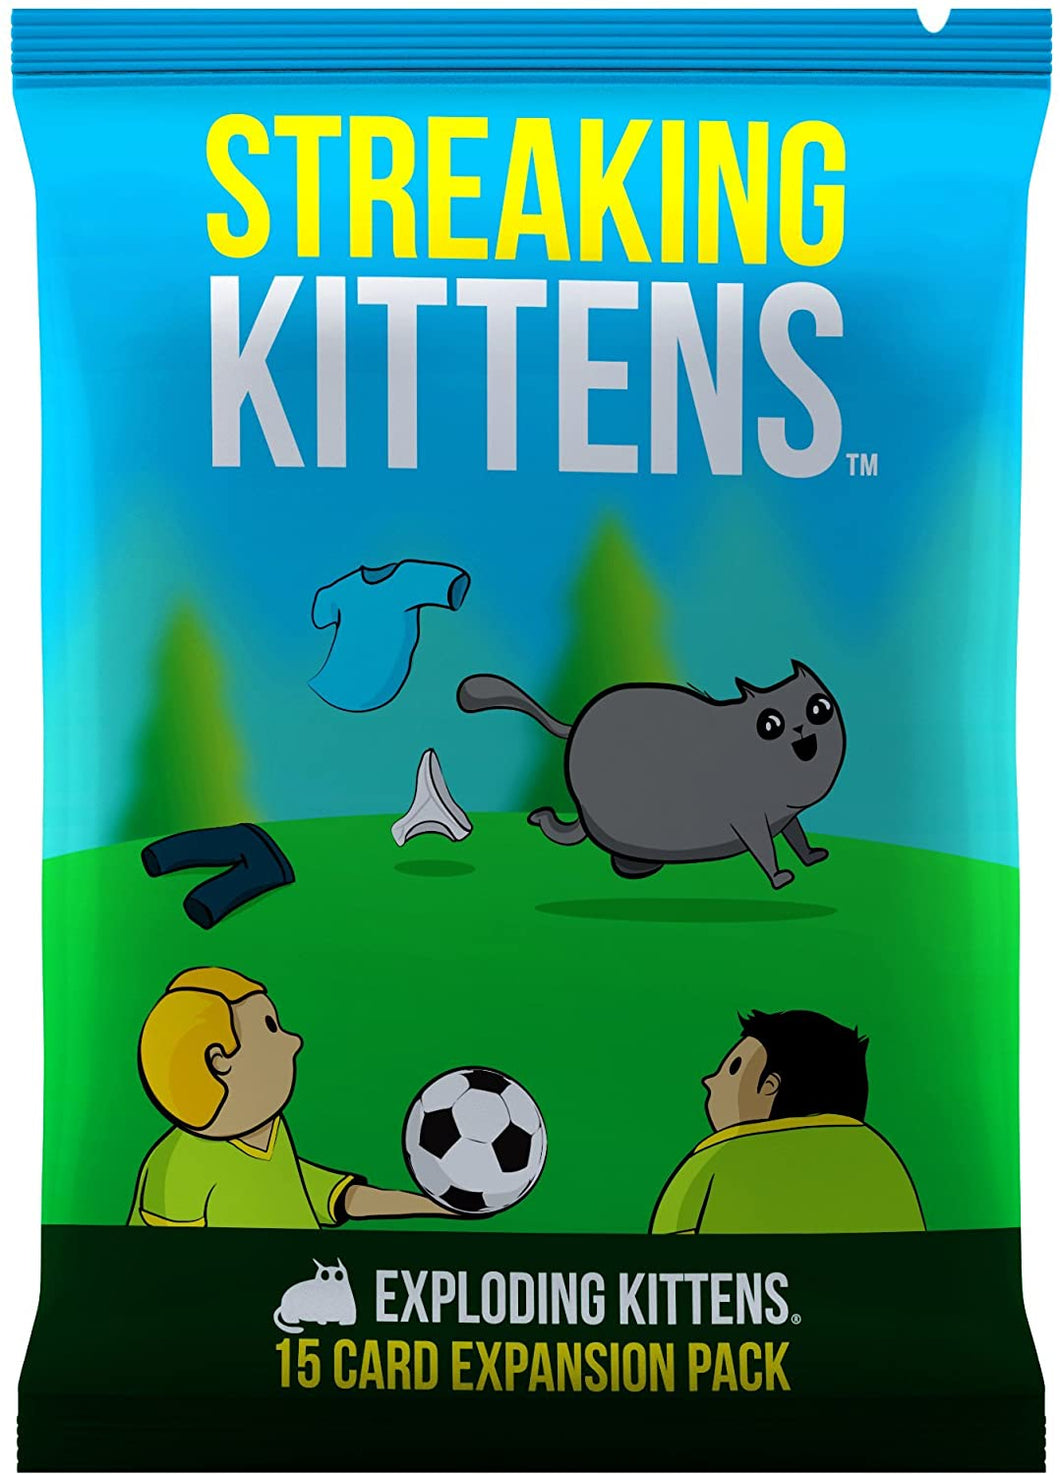 Exploding Kittens - Streaking Kittens Expansion - Roll2Learn